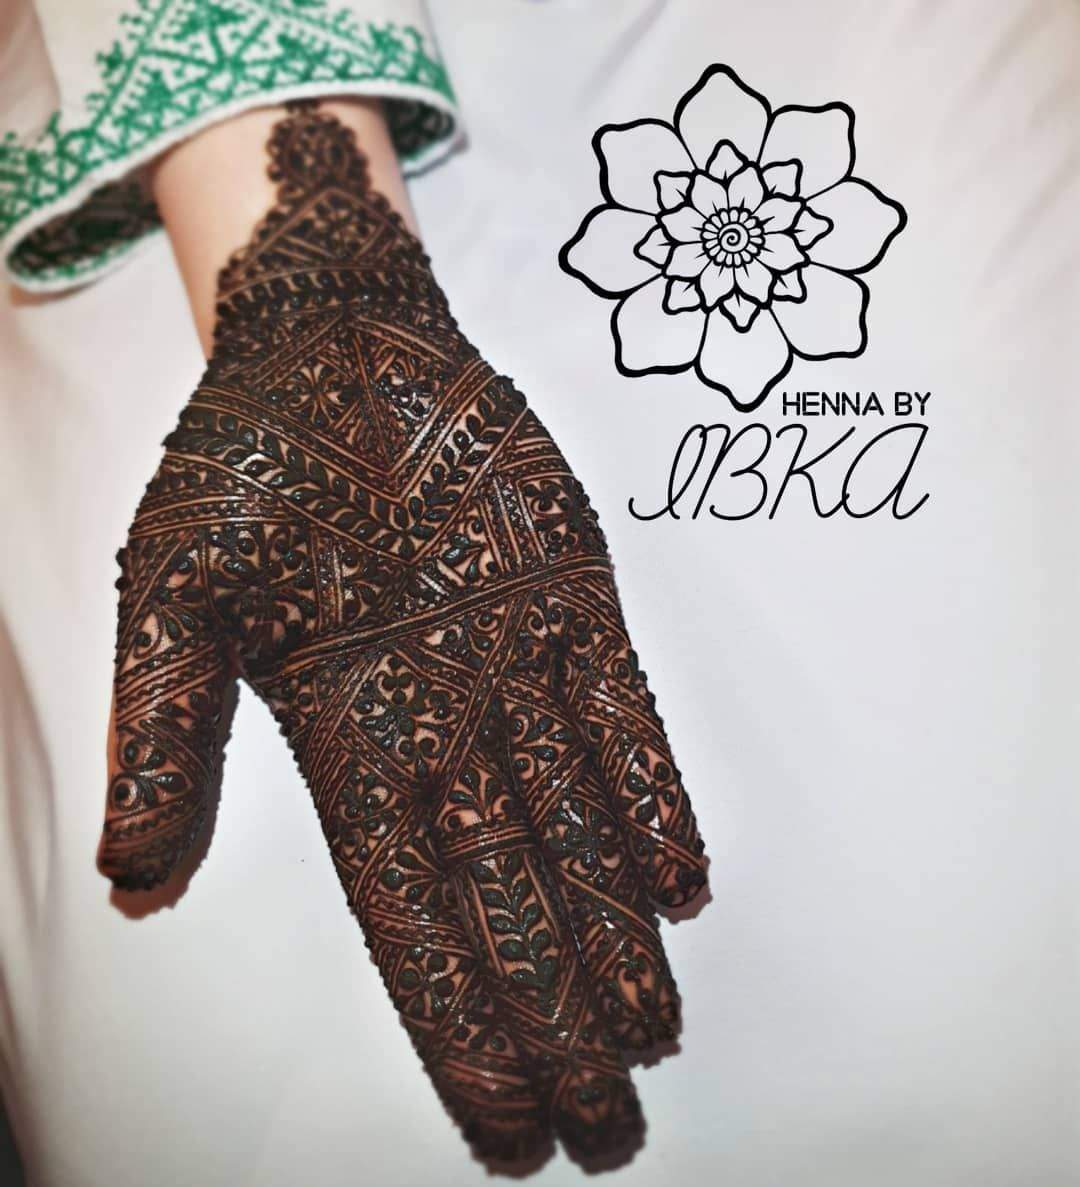 New mehndi designs 2019